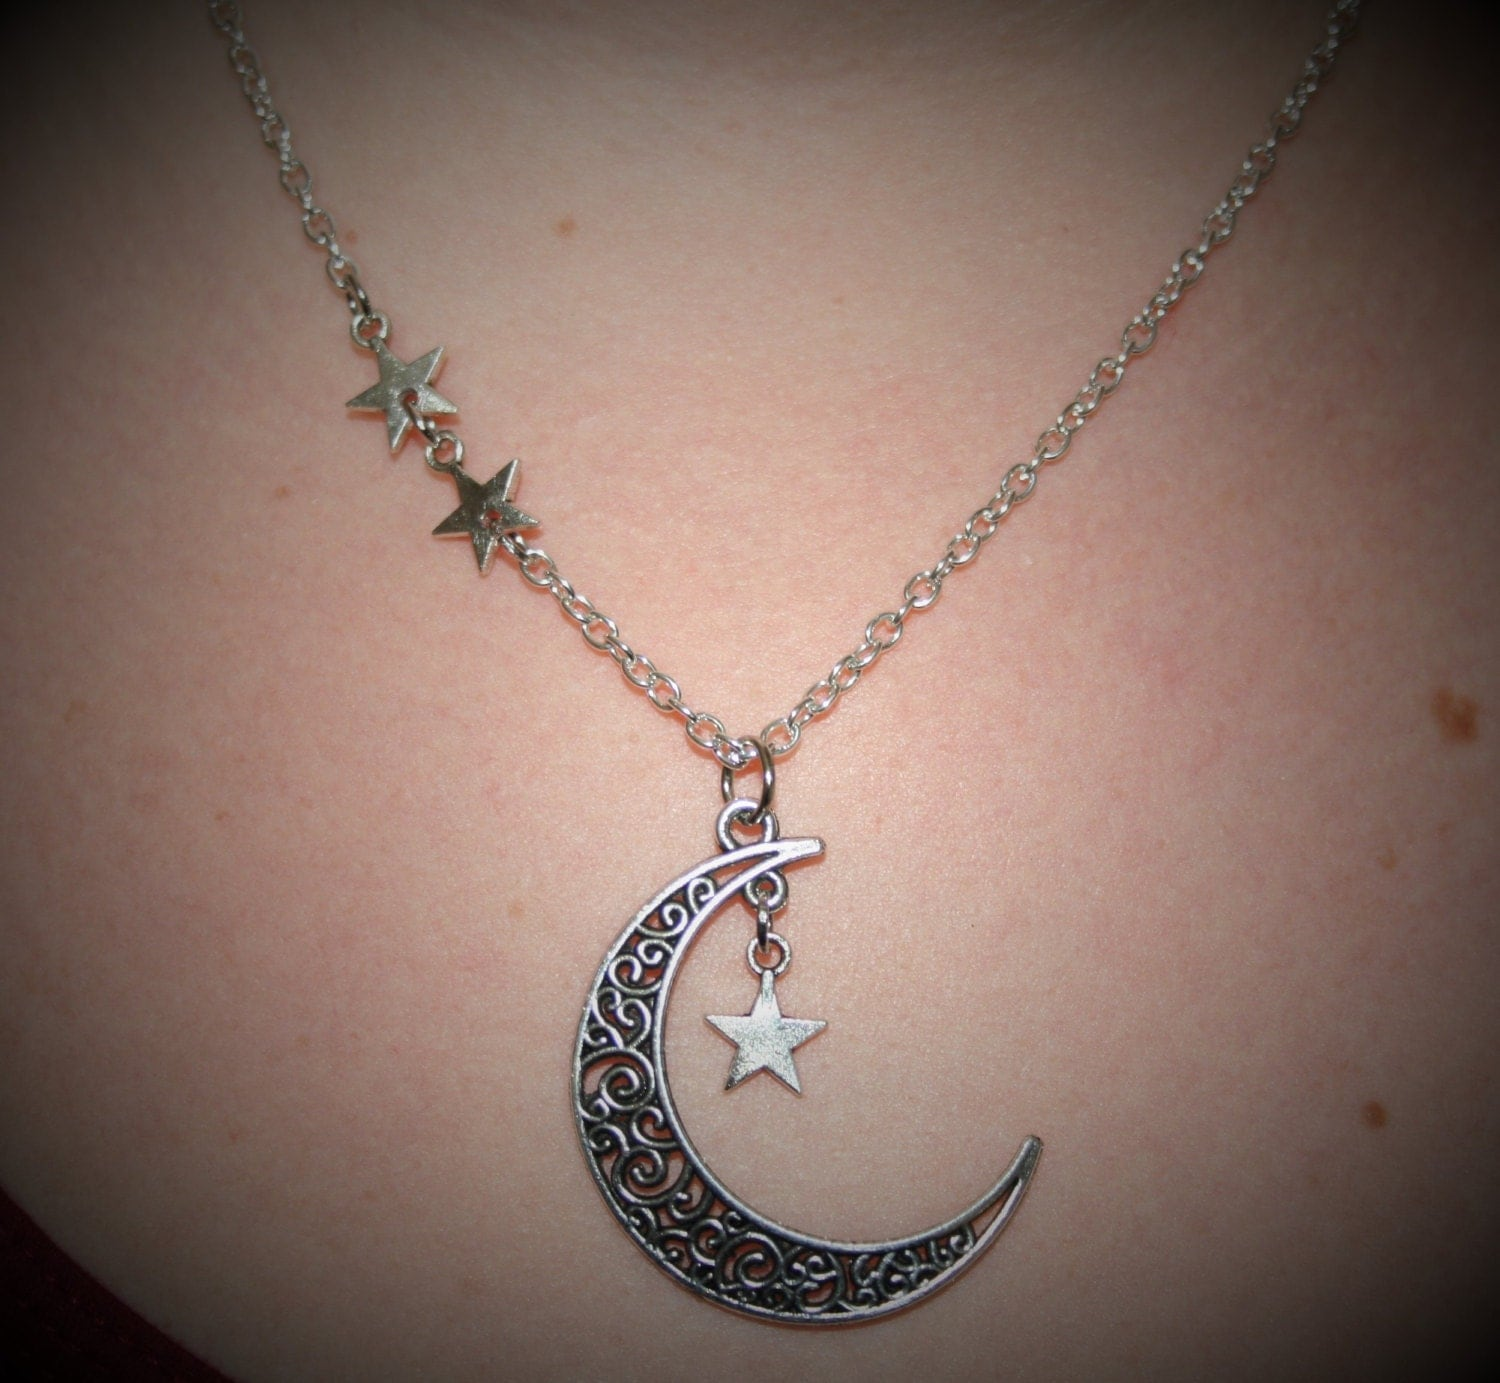 Moon and star necklace star dangle necklace moon and star moon and star necklace star dangle necklace moon and star jewelry silver tribal celtic moon night sky jewelry moon pendant wicca star aloadofball Choice Image